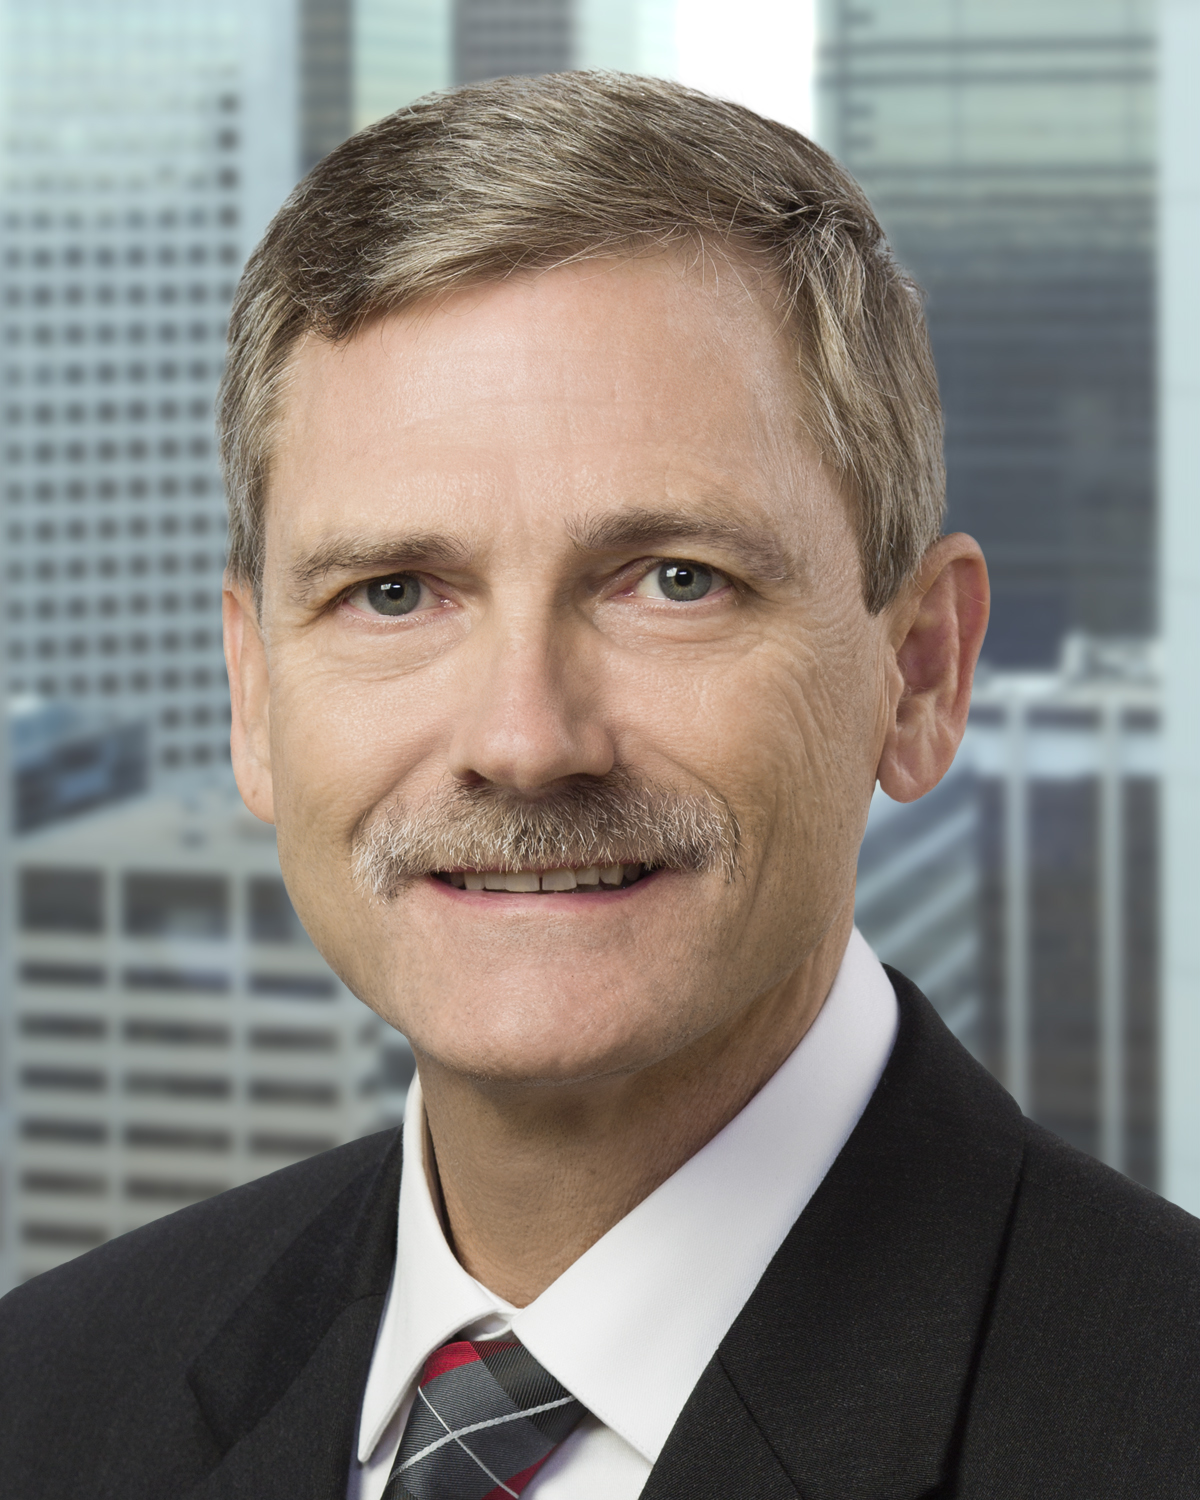 Gregory M. Zimmerman, Vice President, U.S. Business Unit